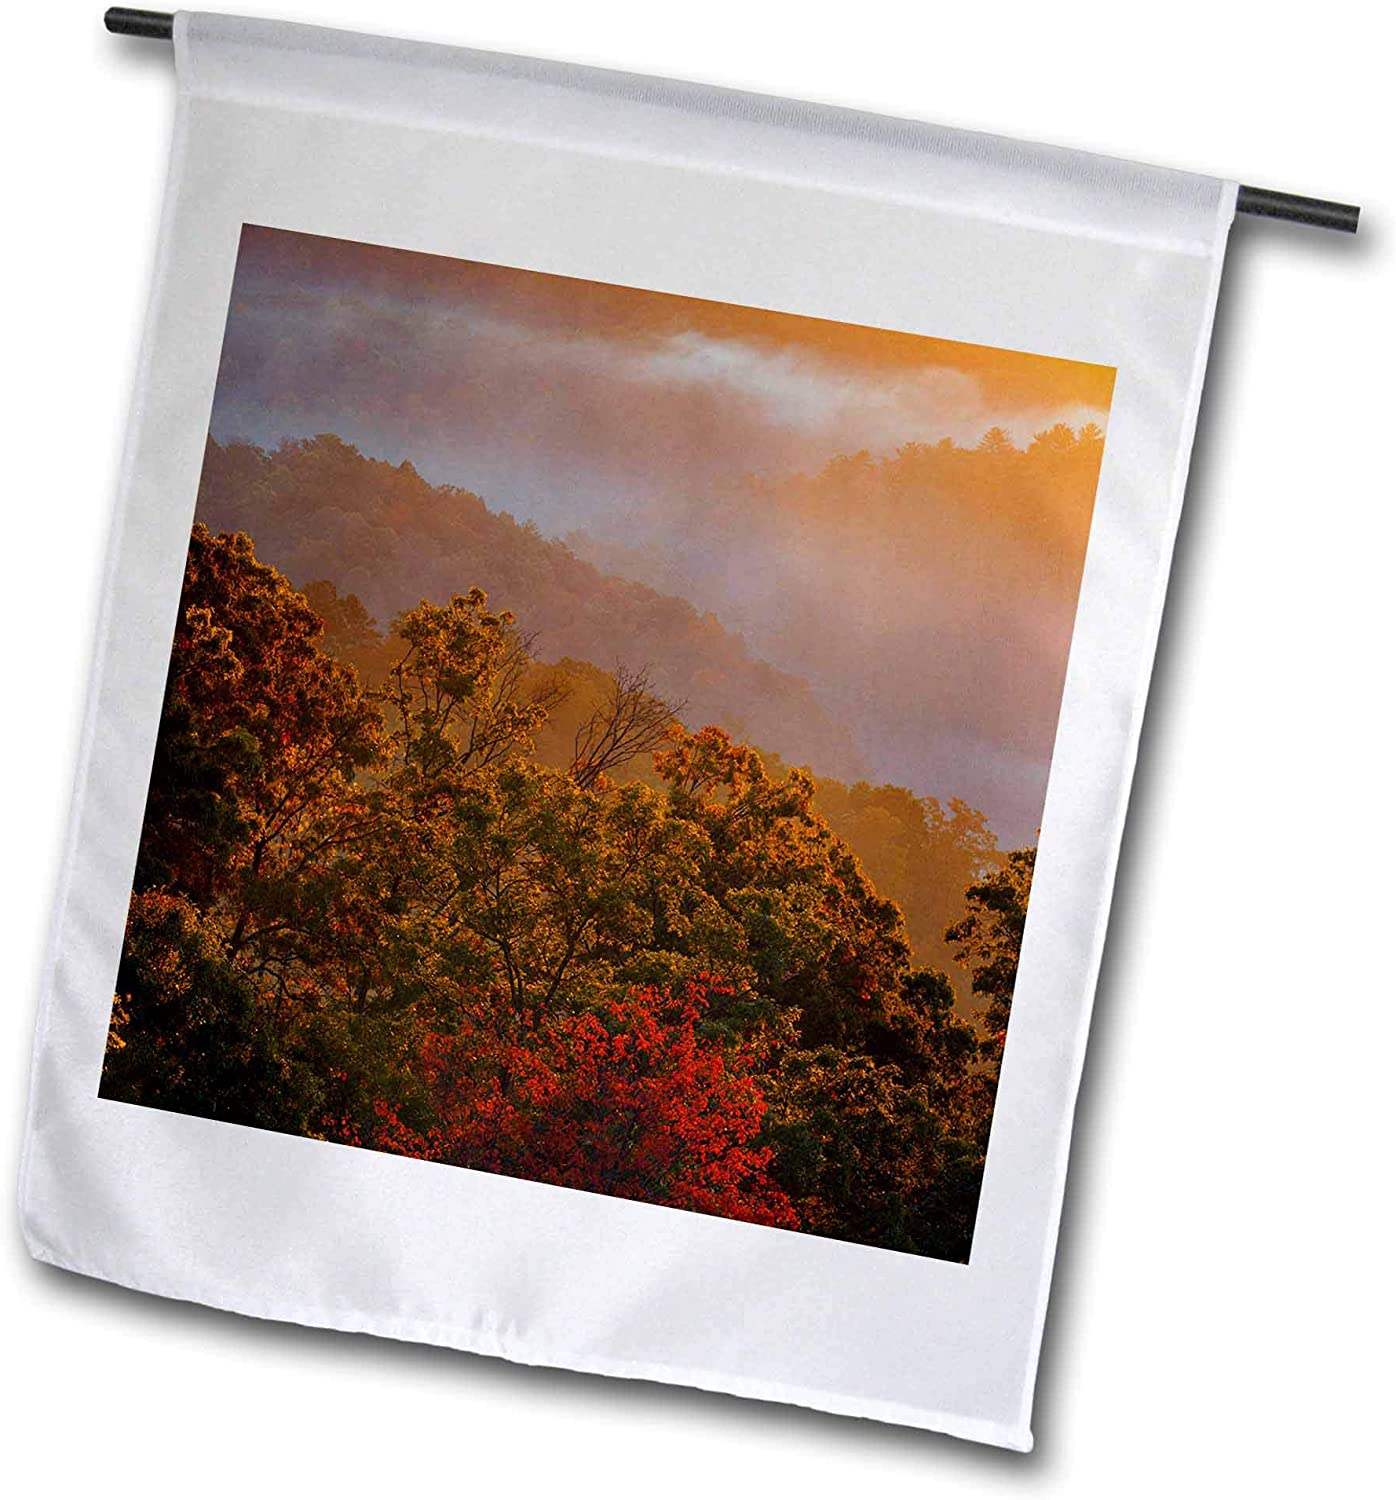 3dRose Danita Delimont - Autumn - USA, Tennessee. Great Smoky Mountain NP, Trees and Fog at Sunrise. - 12 x 18 inch Garden Flag (fl_315025_1)